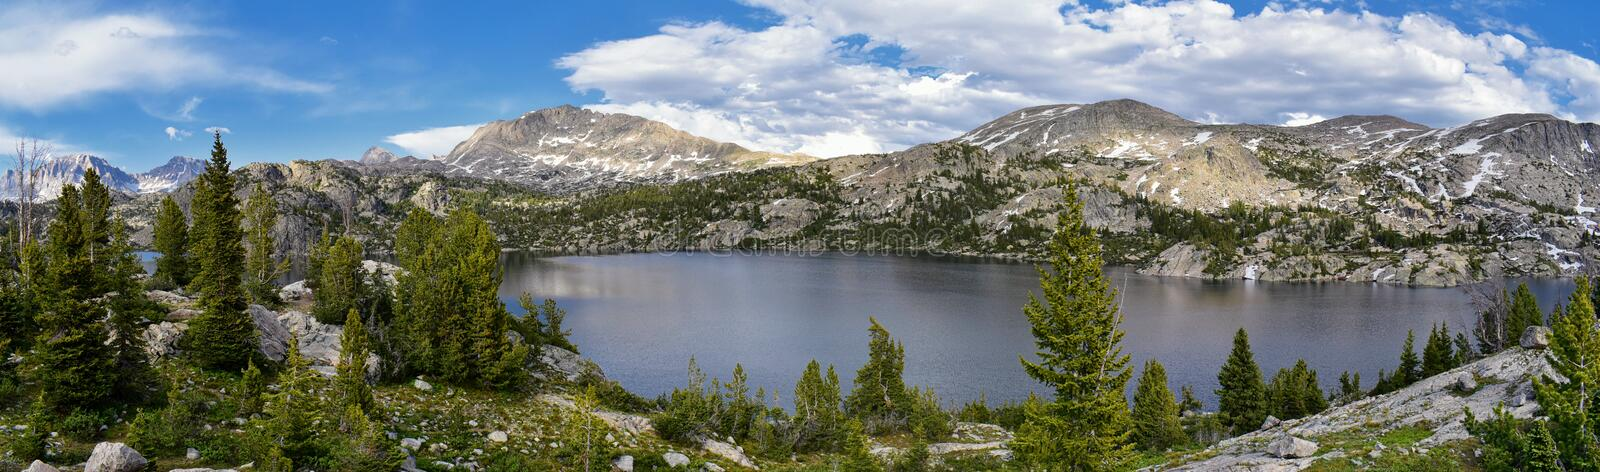 Seneca Lake in the Wind River Range, Rocky Mountains, Wyoming, views from backpacking hiking trail to Titcomb Basin from Elkhart P. Ark Trailhead going past stock photo